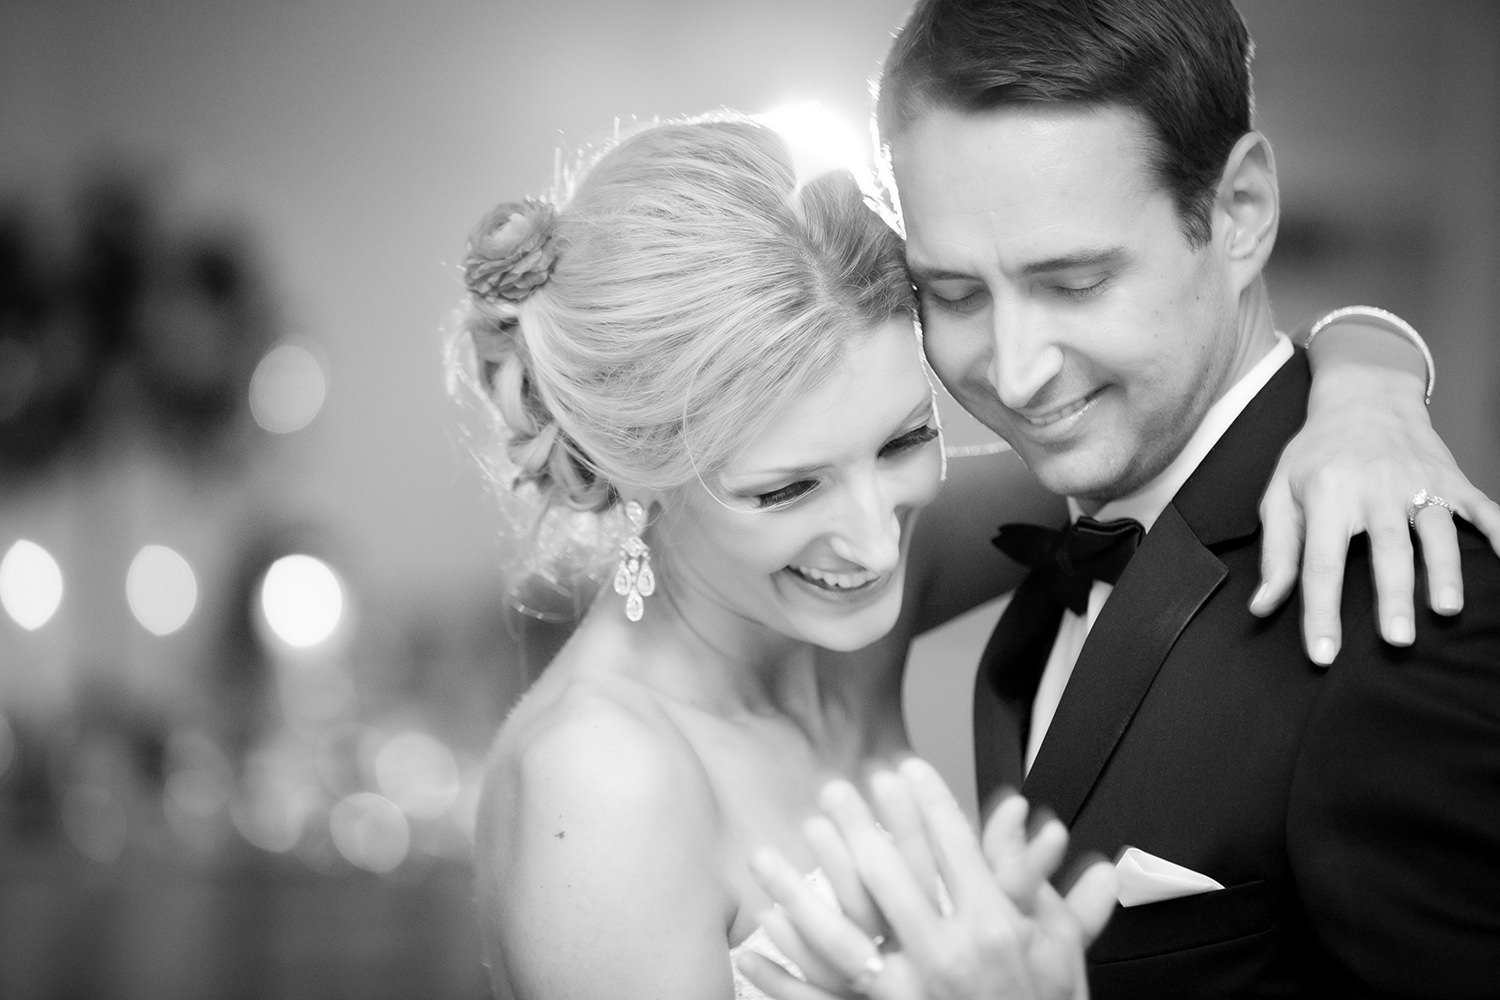 Sweet candid moment during a bride and grooms first dance